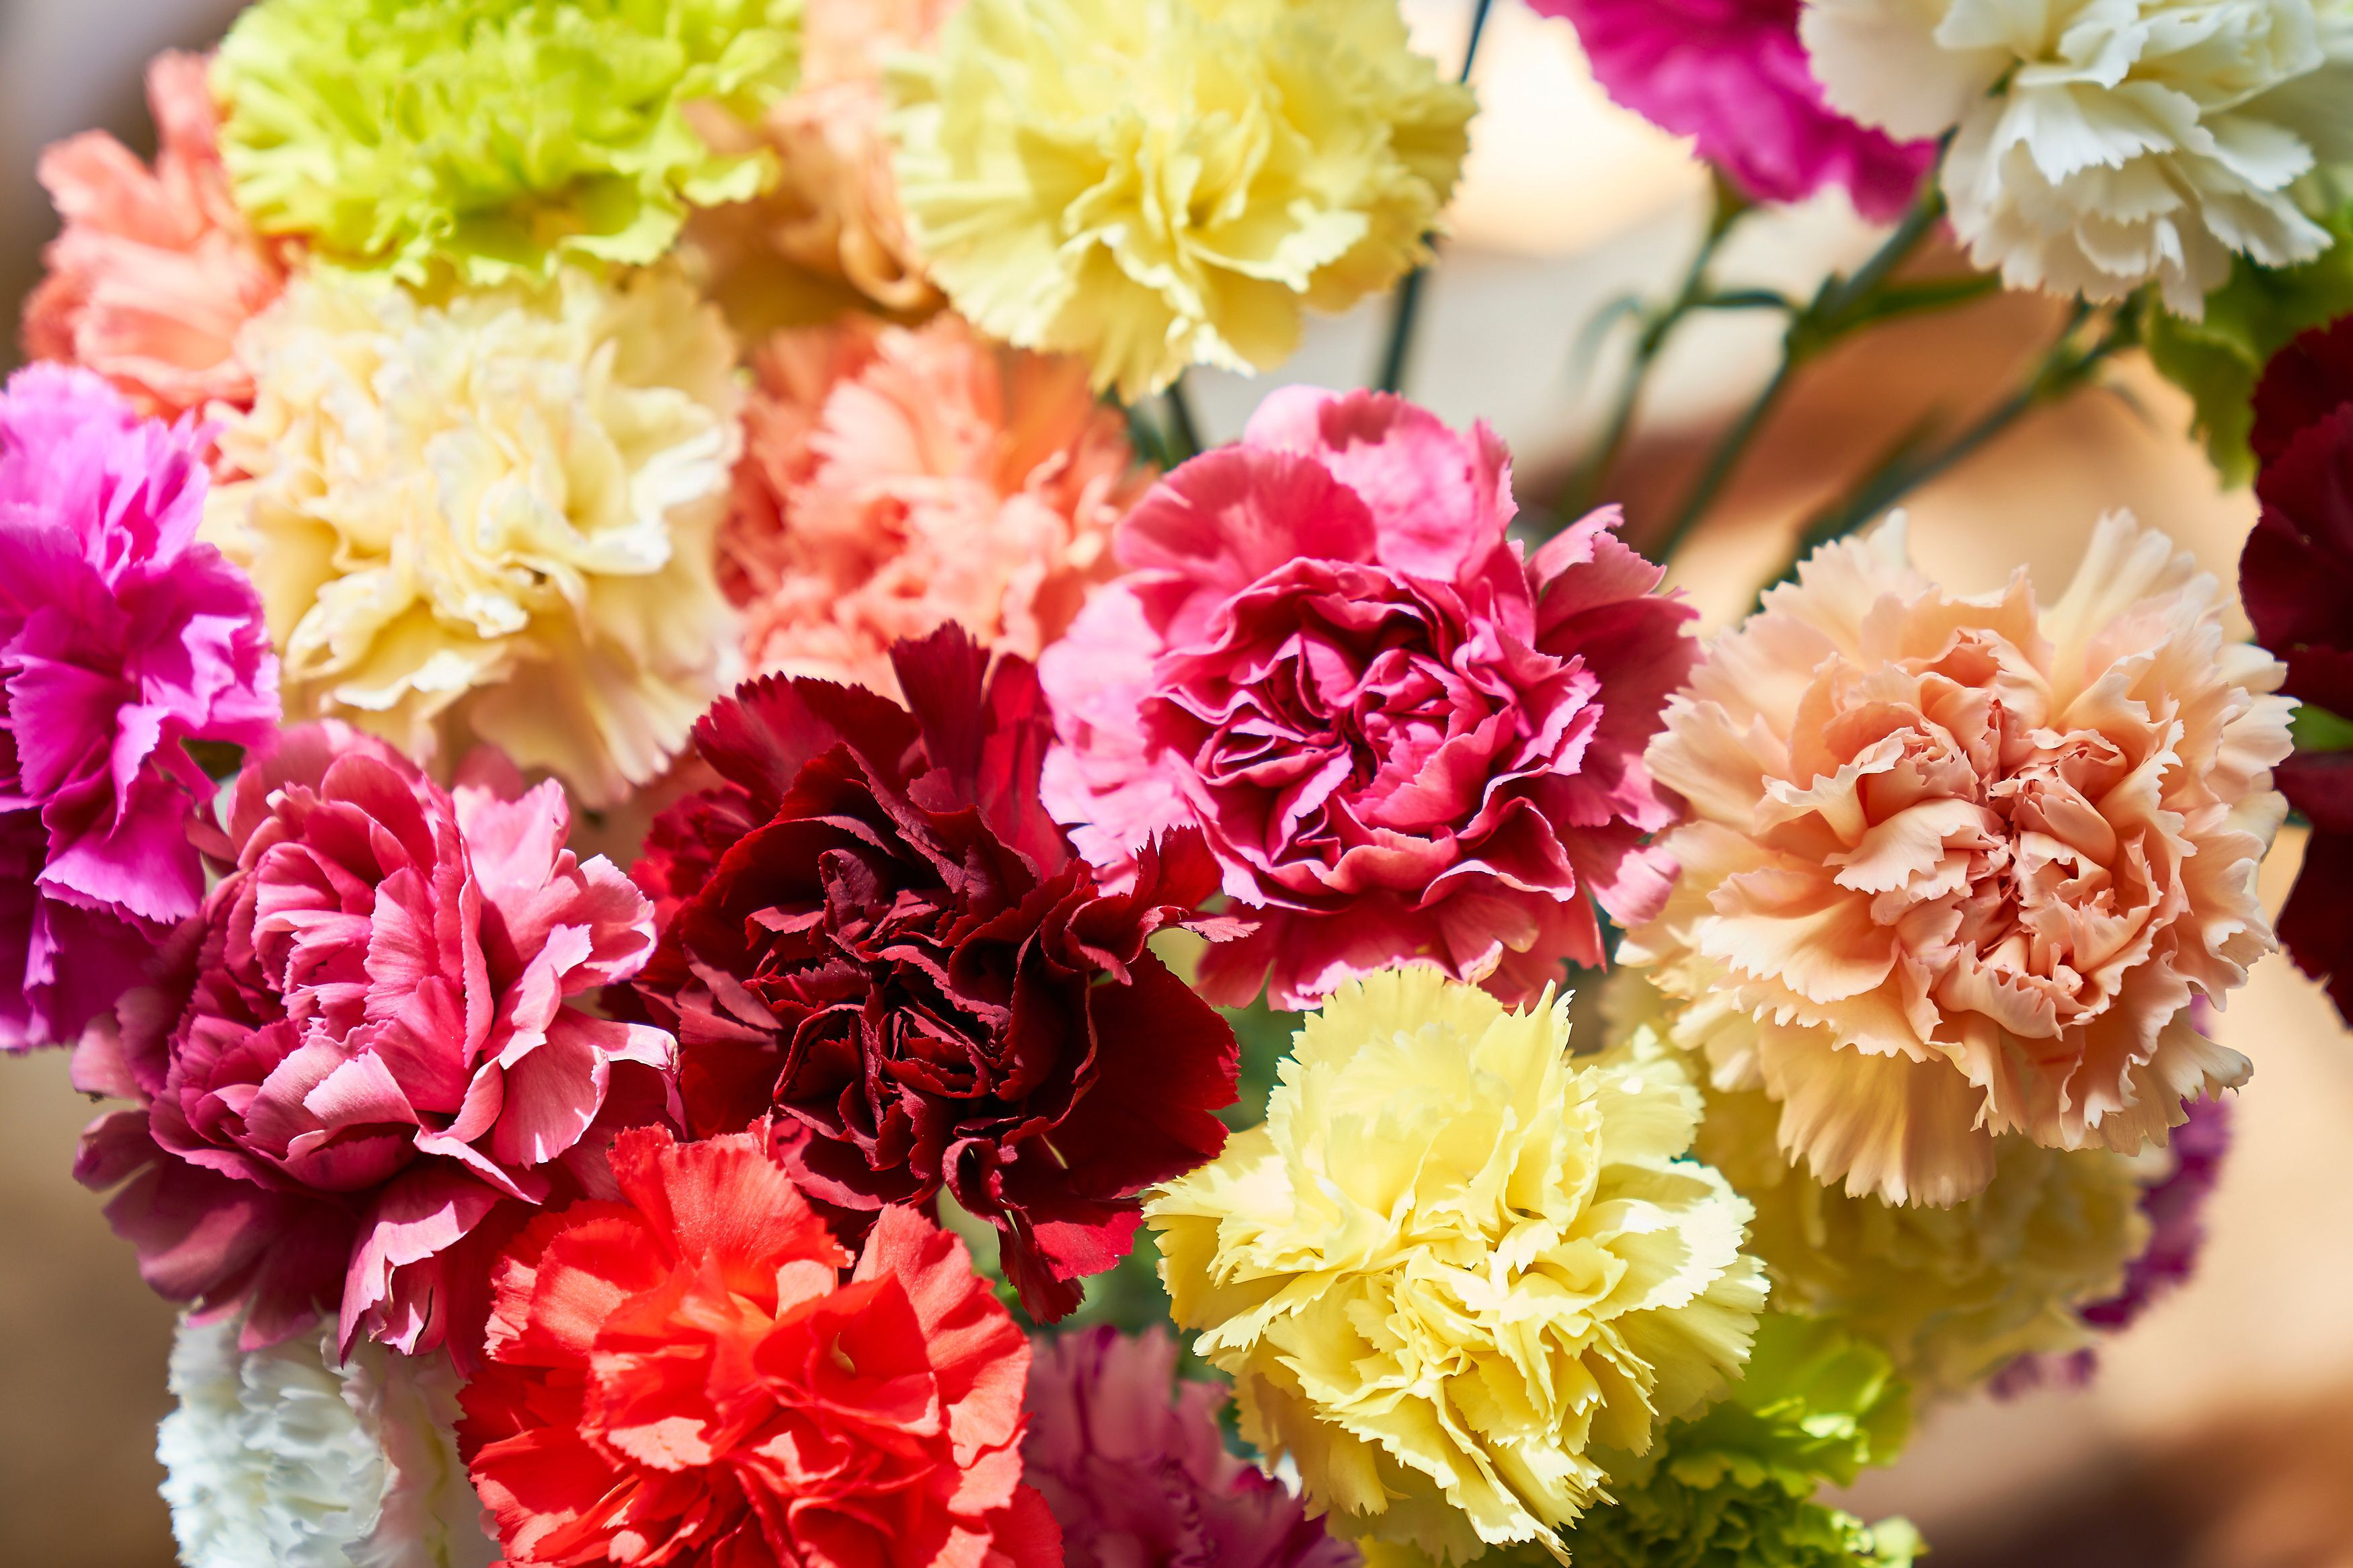 yellow flowers in vase painting of 13 top varieties for cut flowers throughout carnation gettyimages 746096929 59d4fb41845b340011a894c1